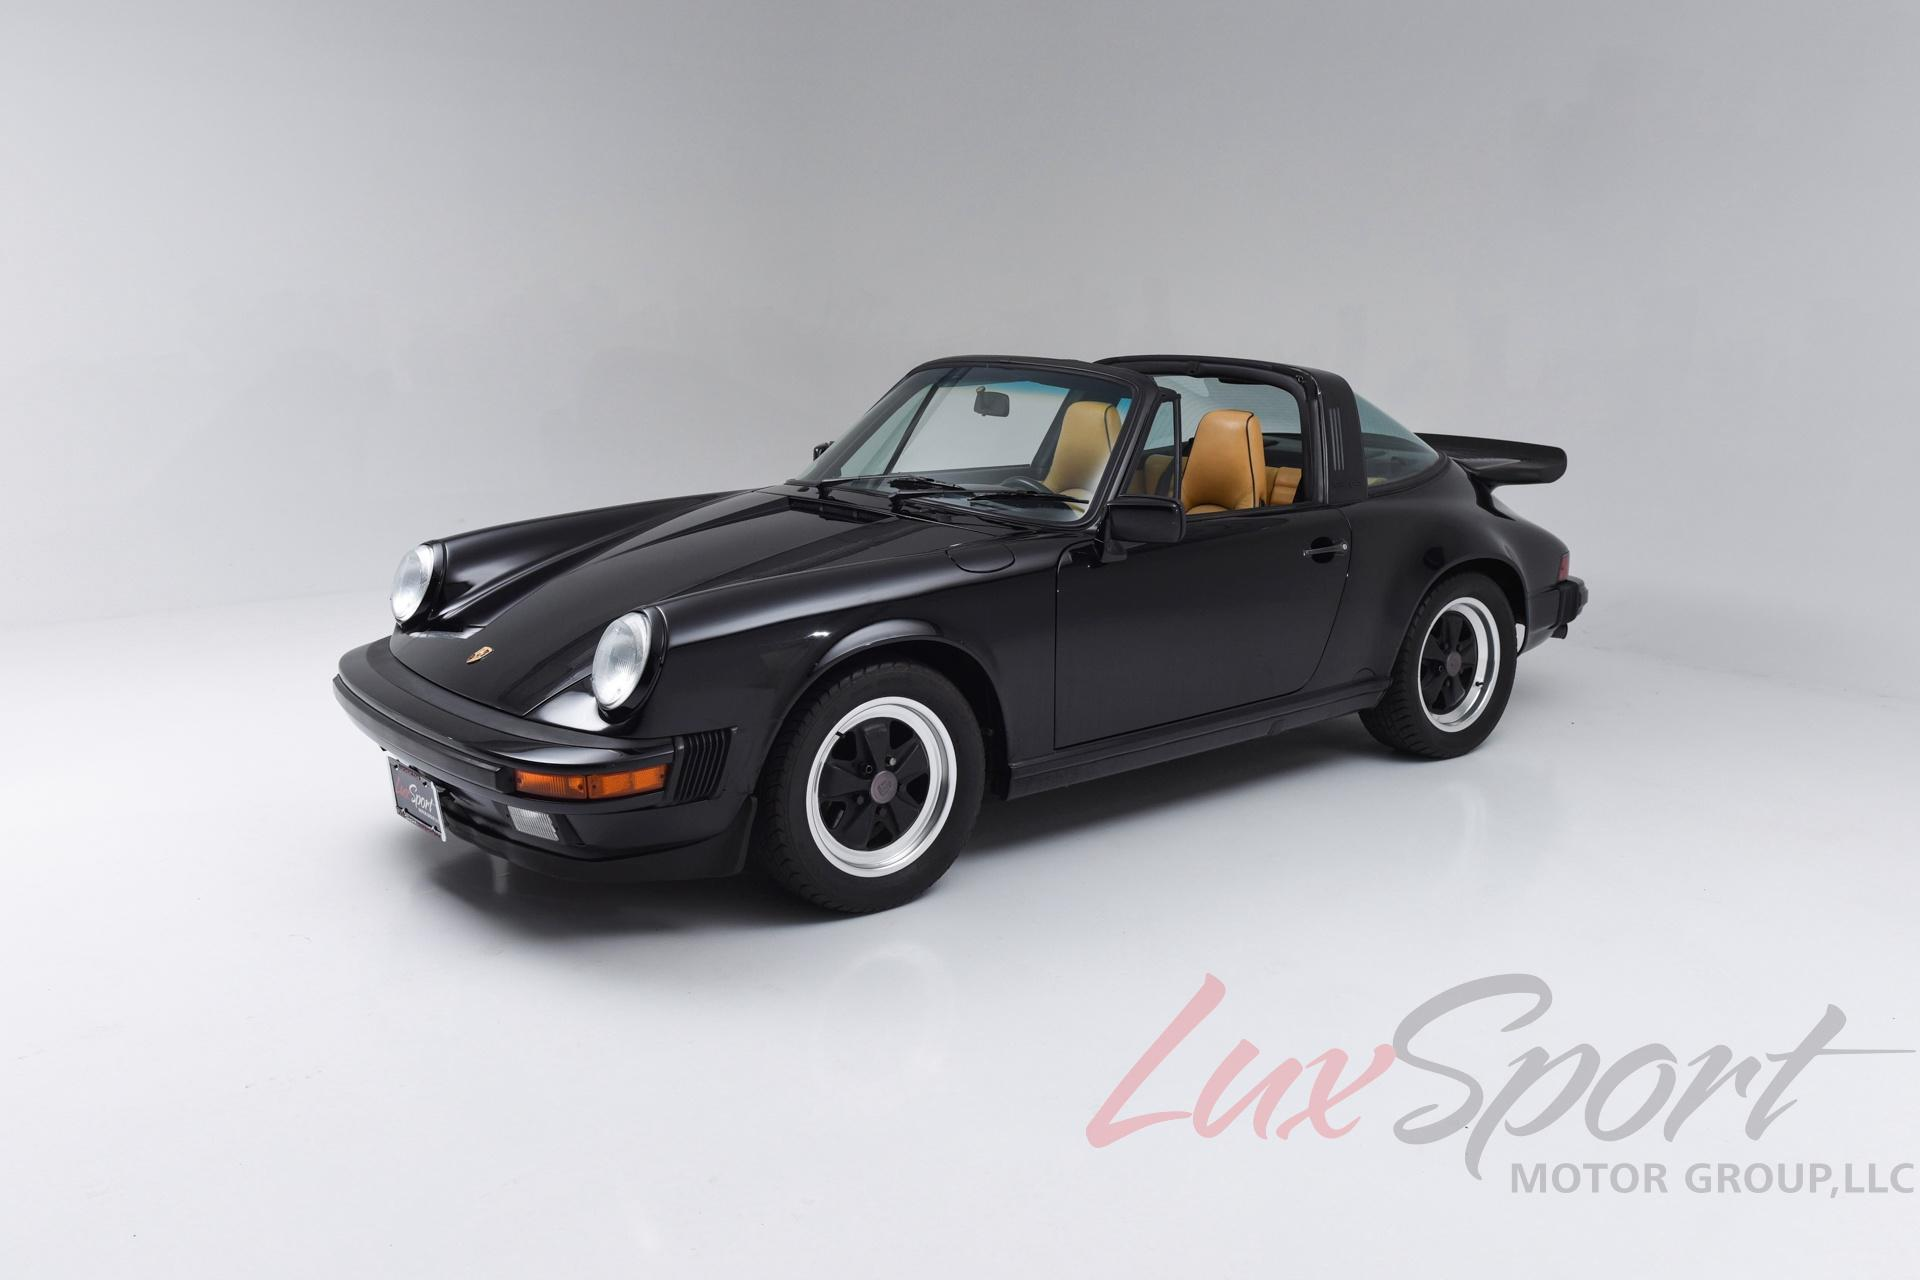 Used 1988 porsche 911 carrera targa carrera new hyde park ny